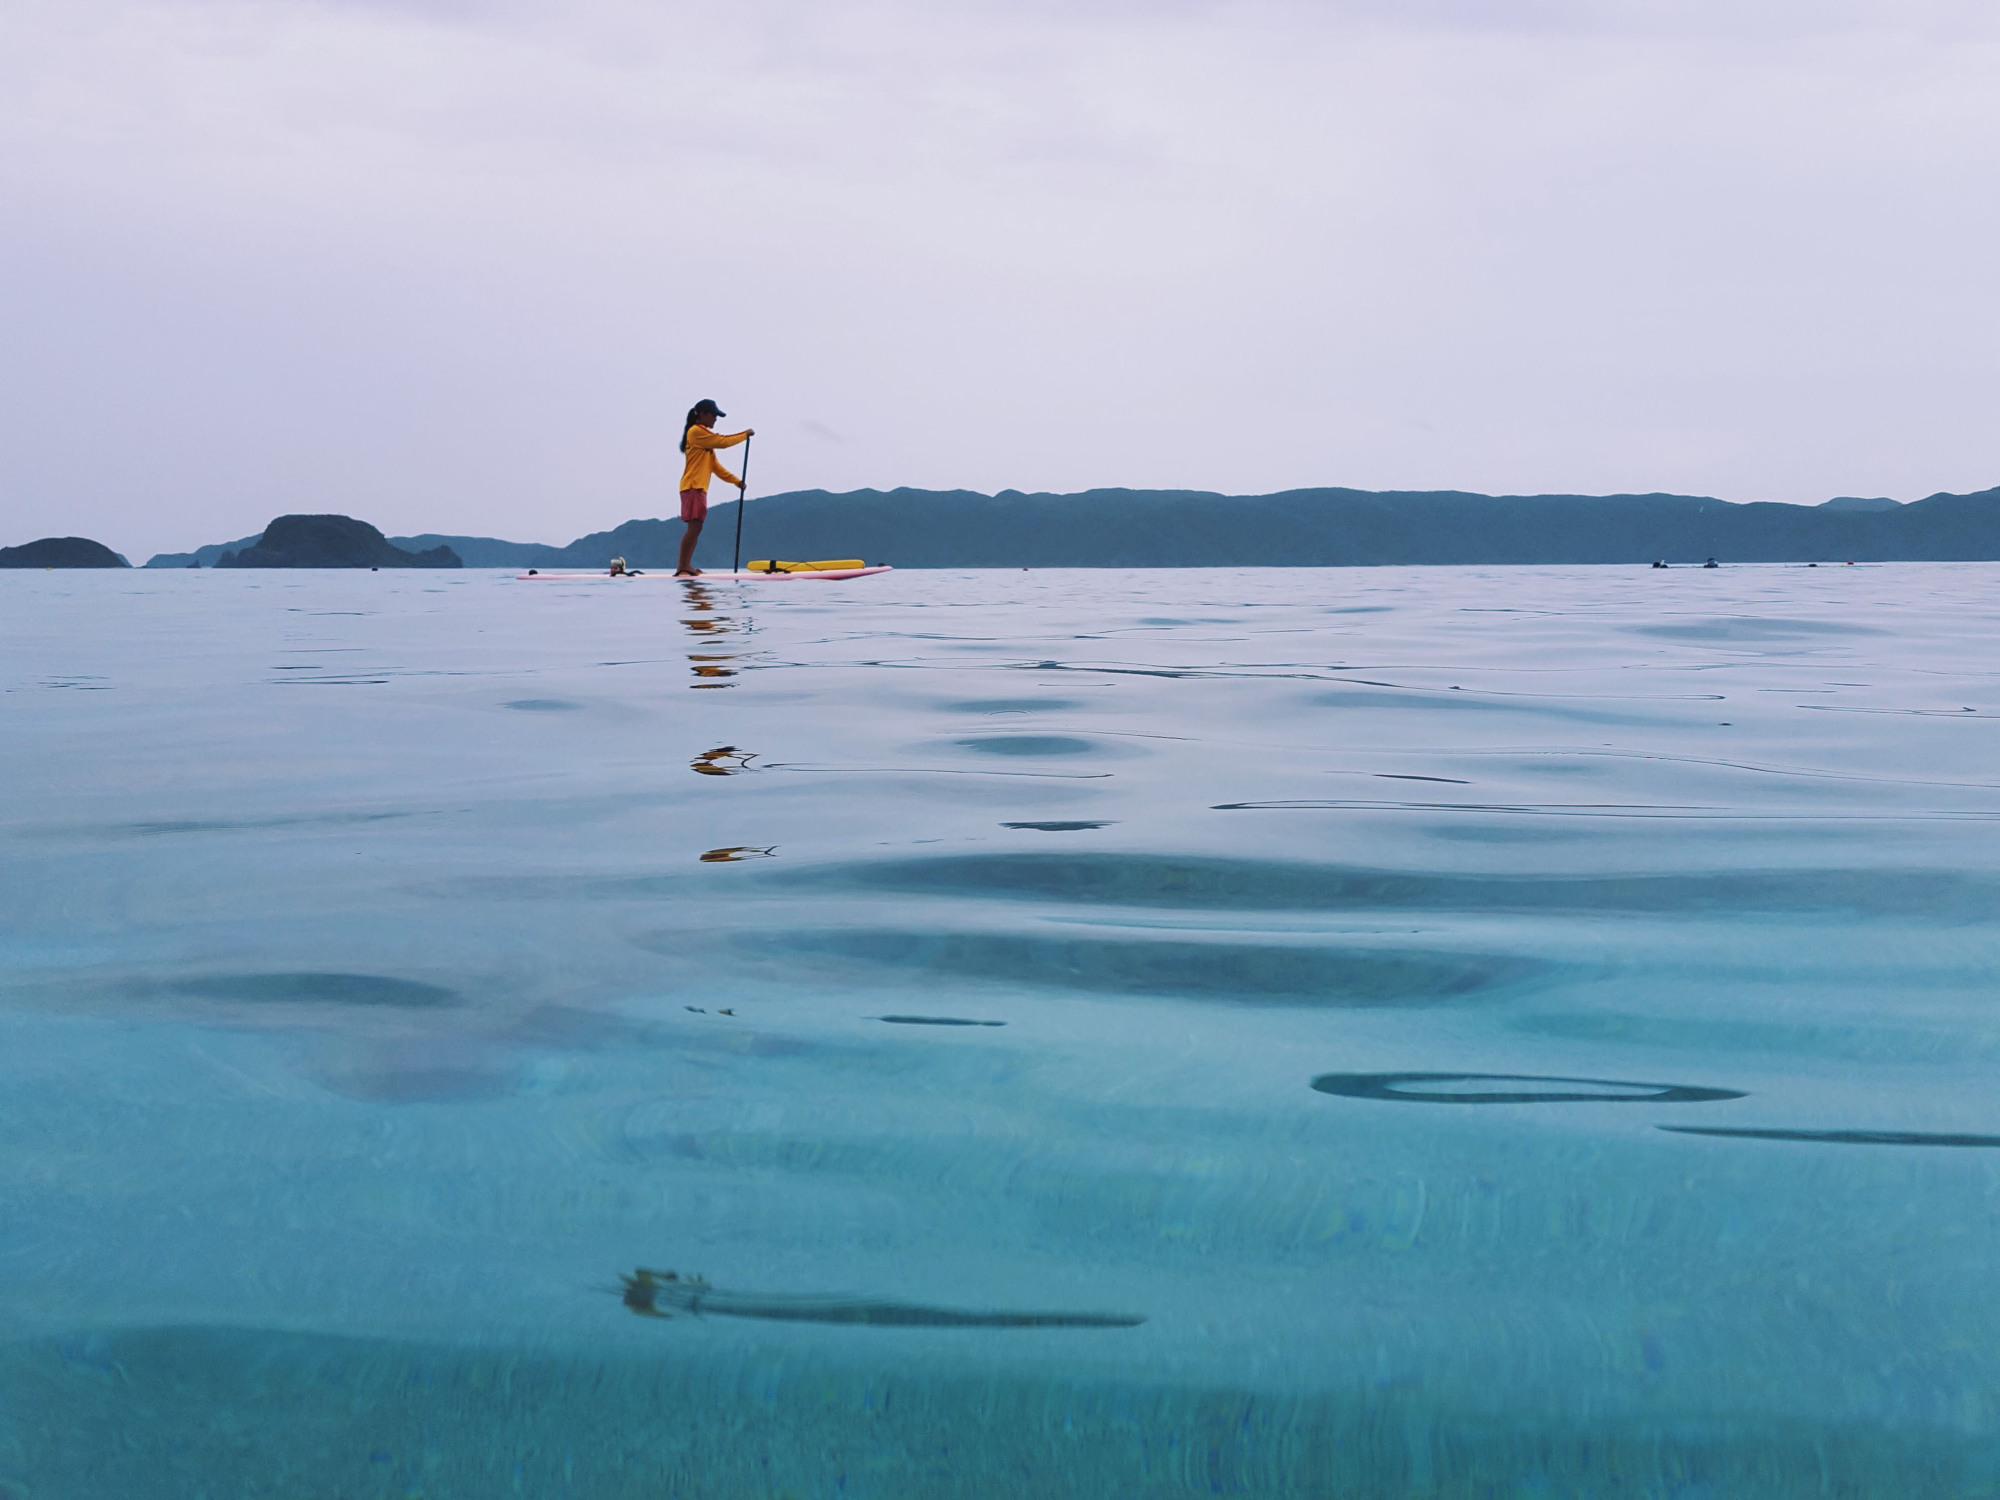 Another day at the office: A lifeguard navigates the waters off Zamami Island. | ANDREW CURRY